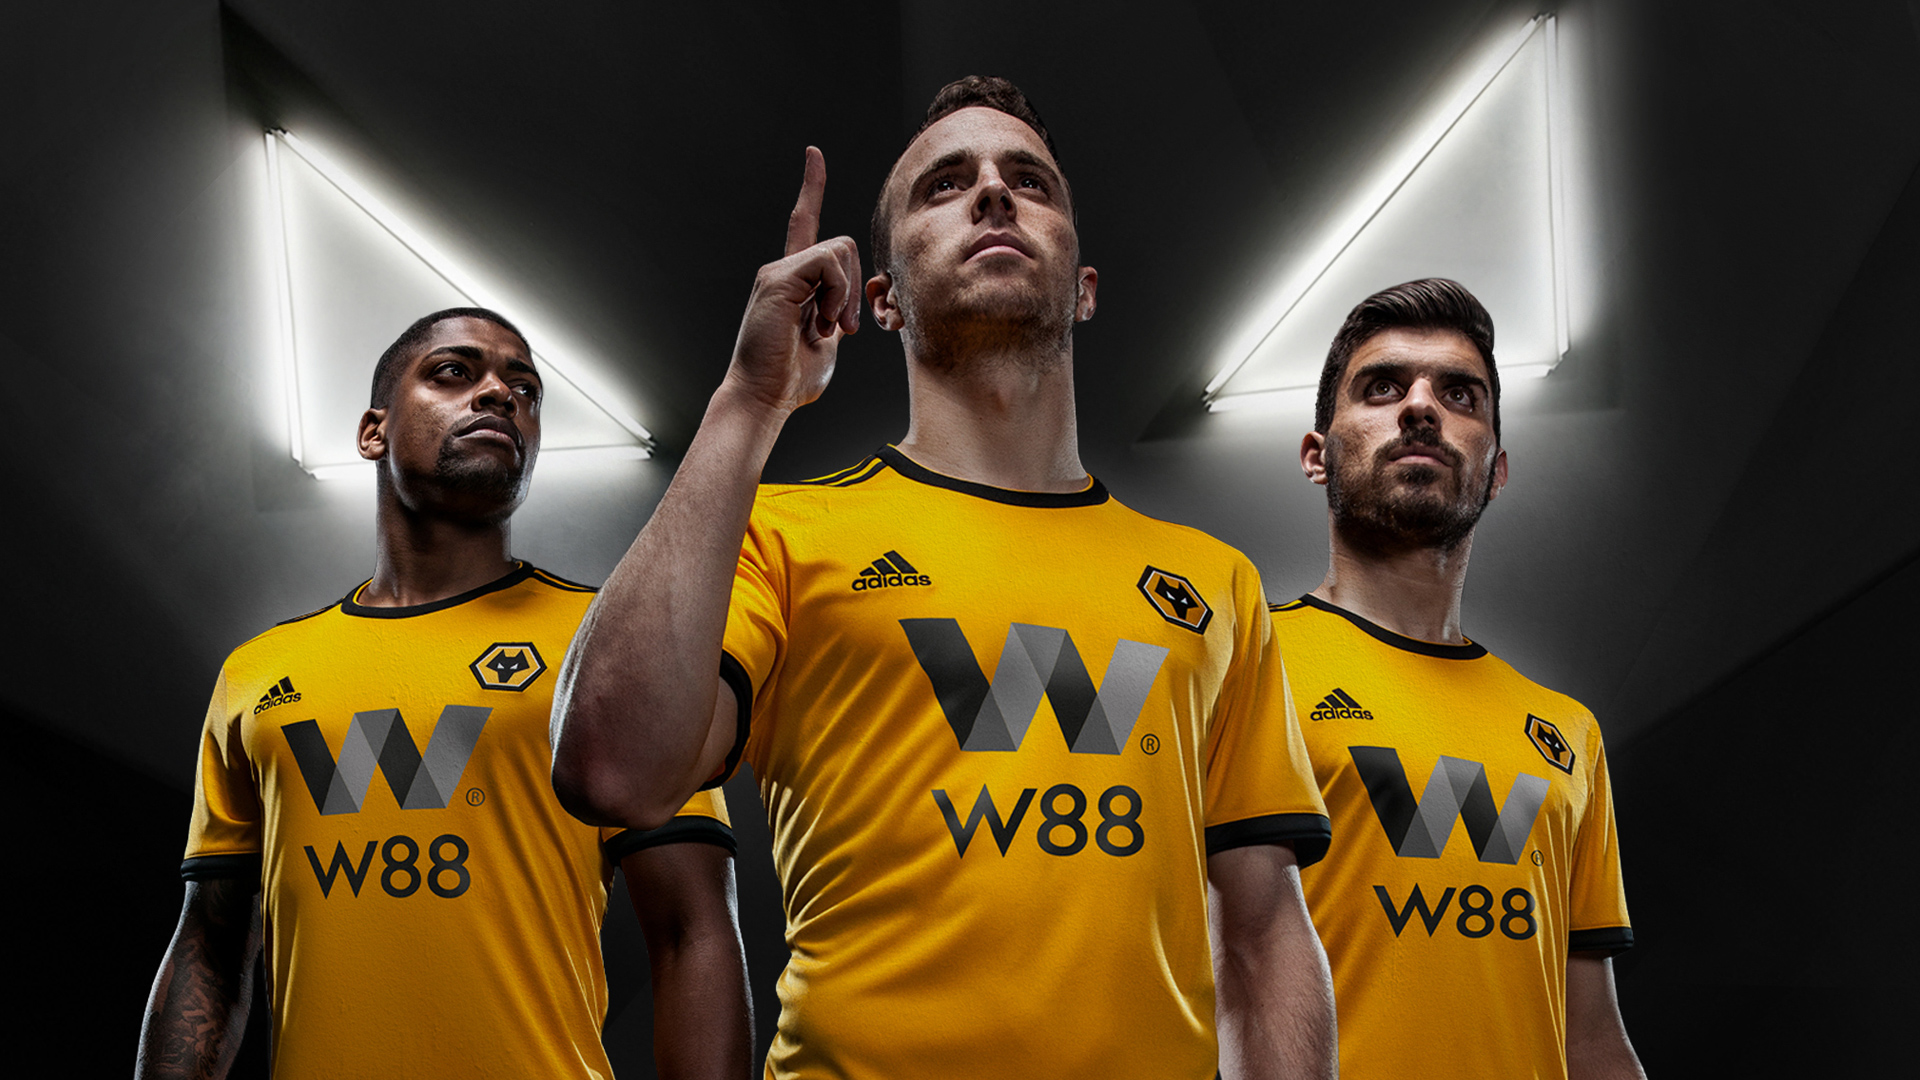 redesign for wolves - england - New visual identity for Wolverhampton Wanderers